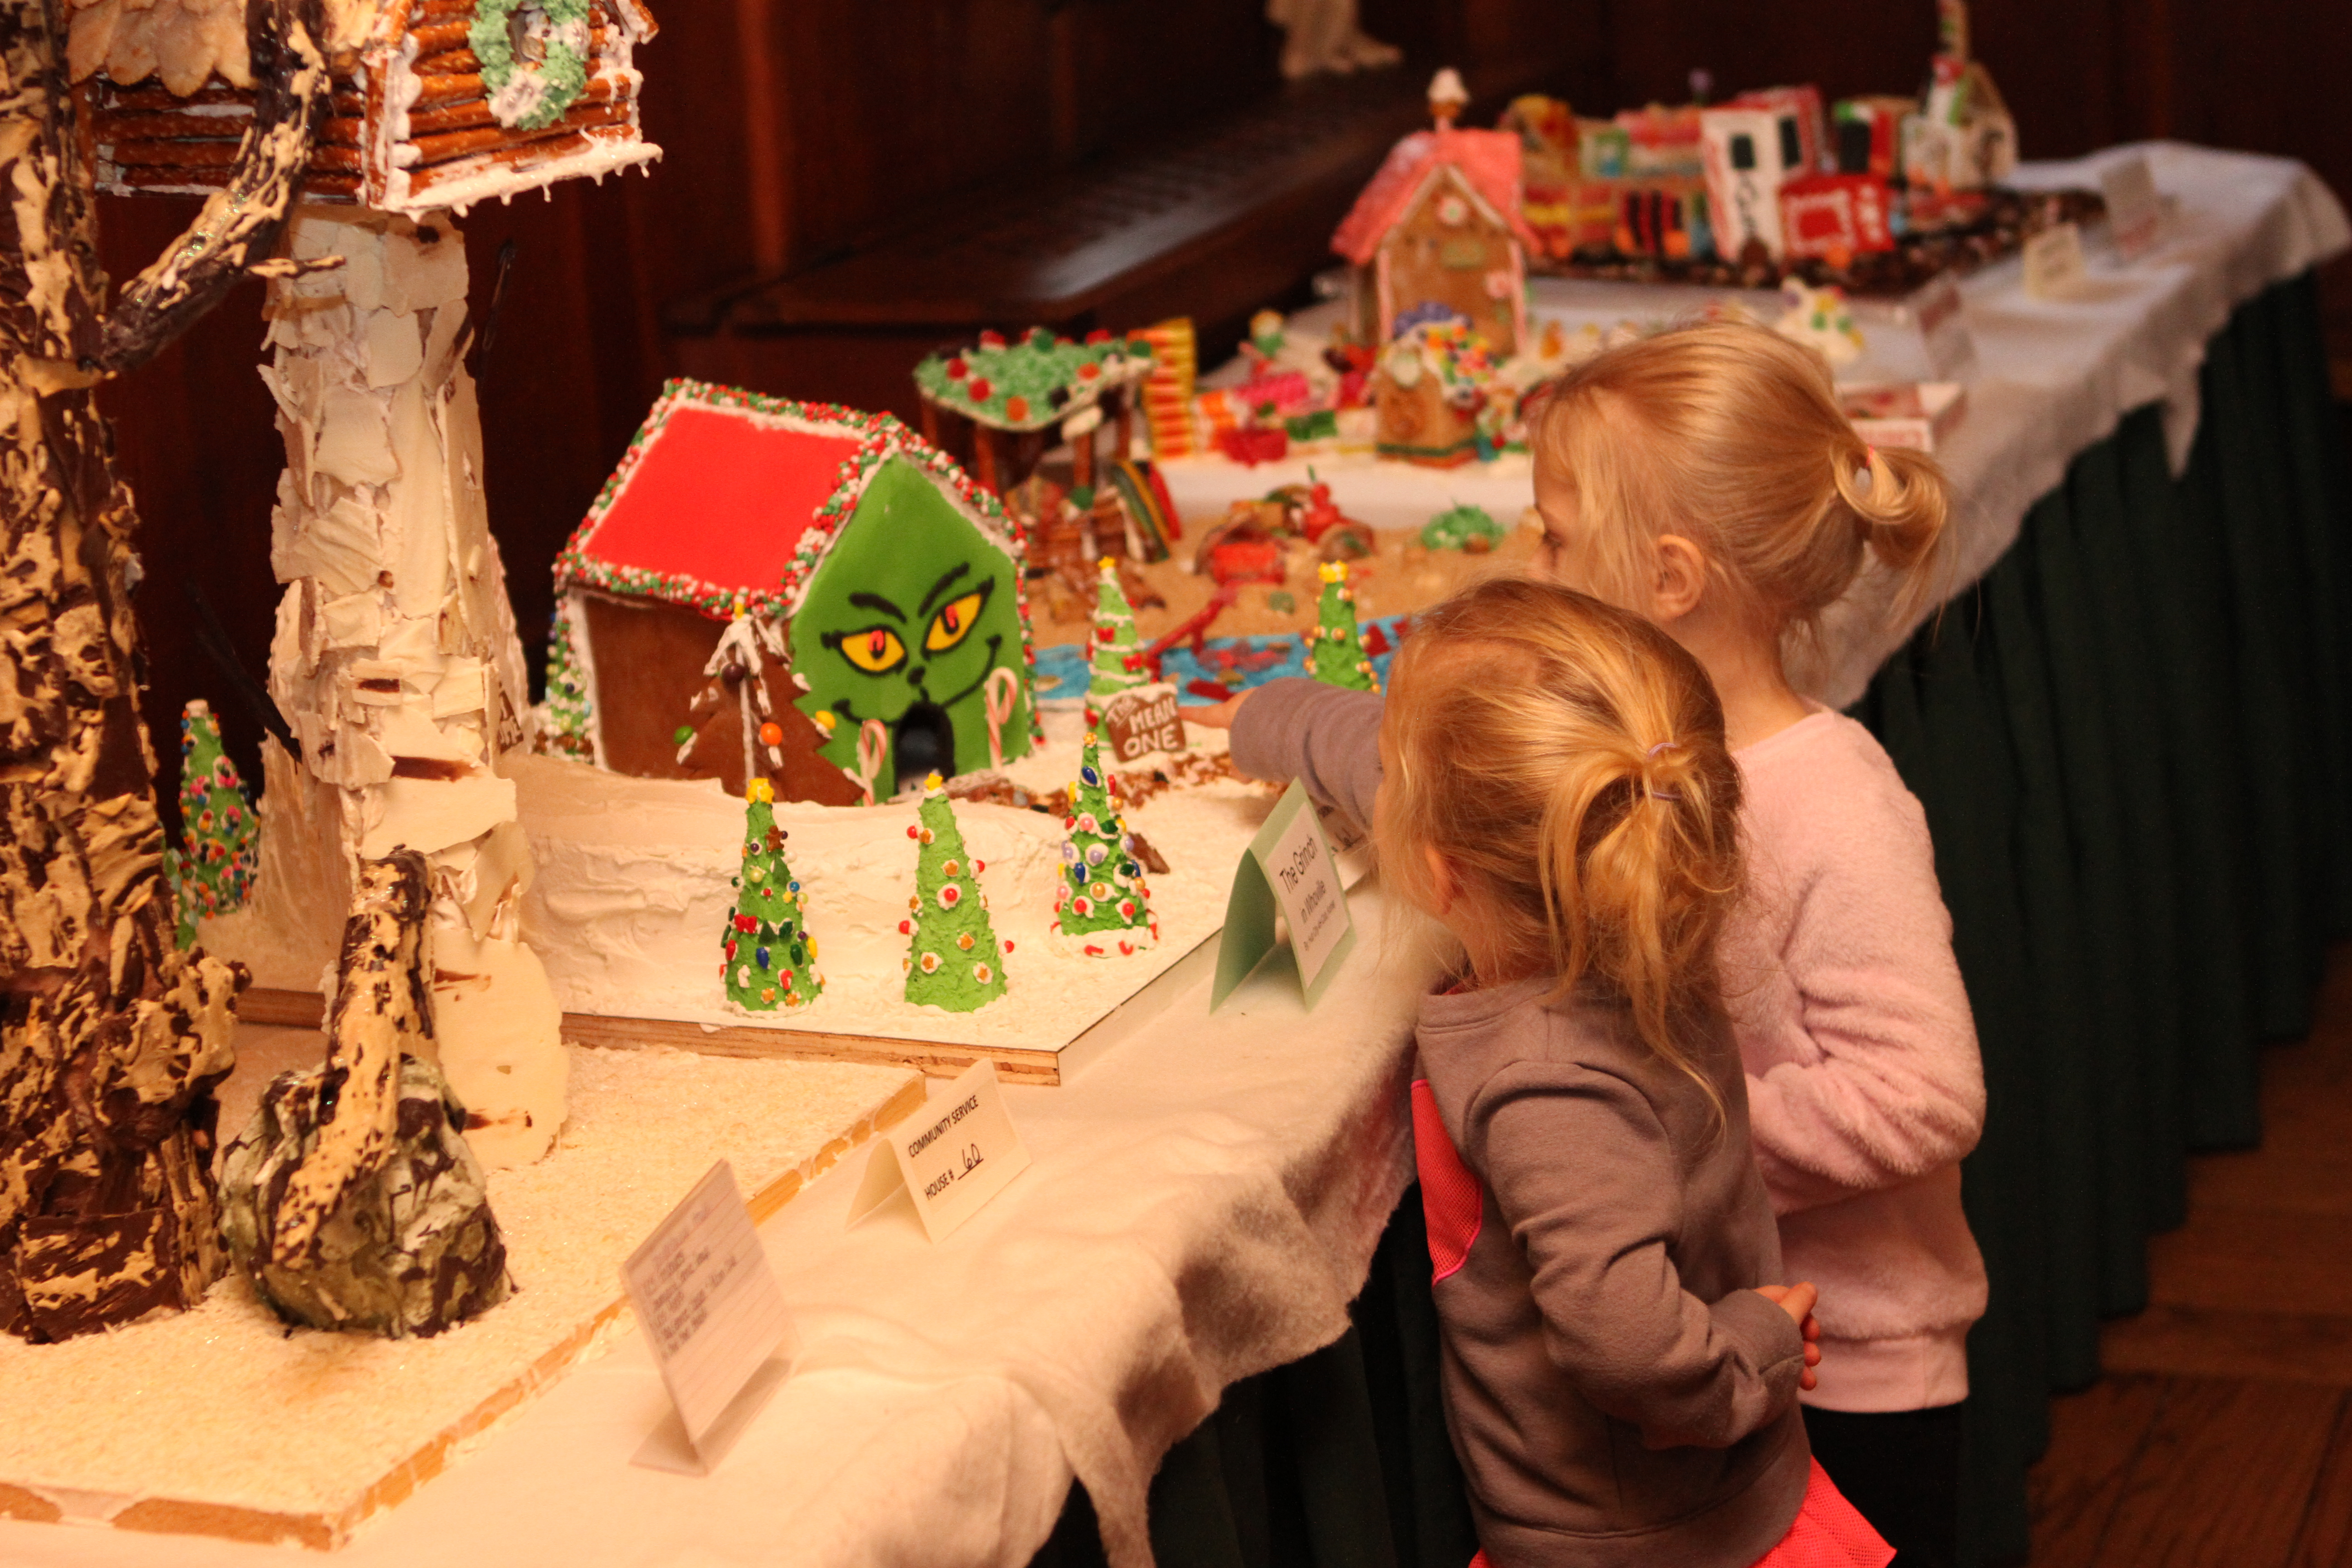 Holiday Music and Hand-Made Houses at 23rd Annual Gingerbread Festival